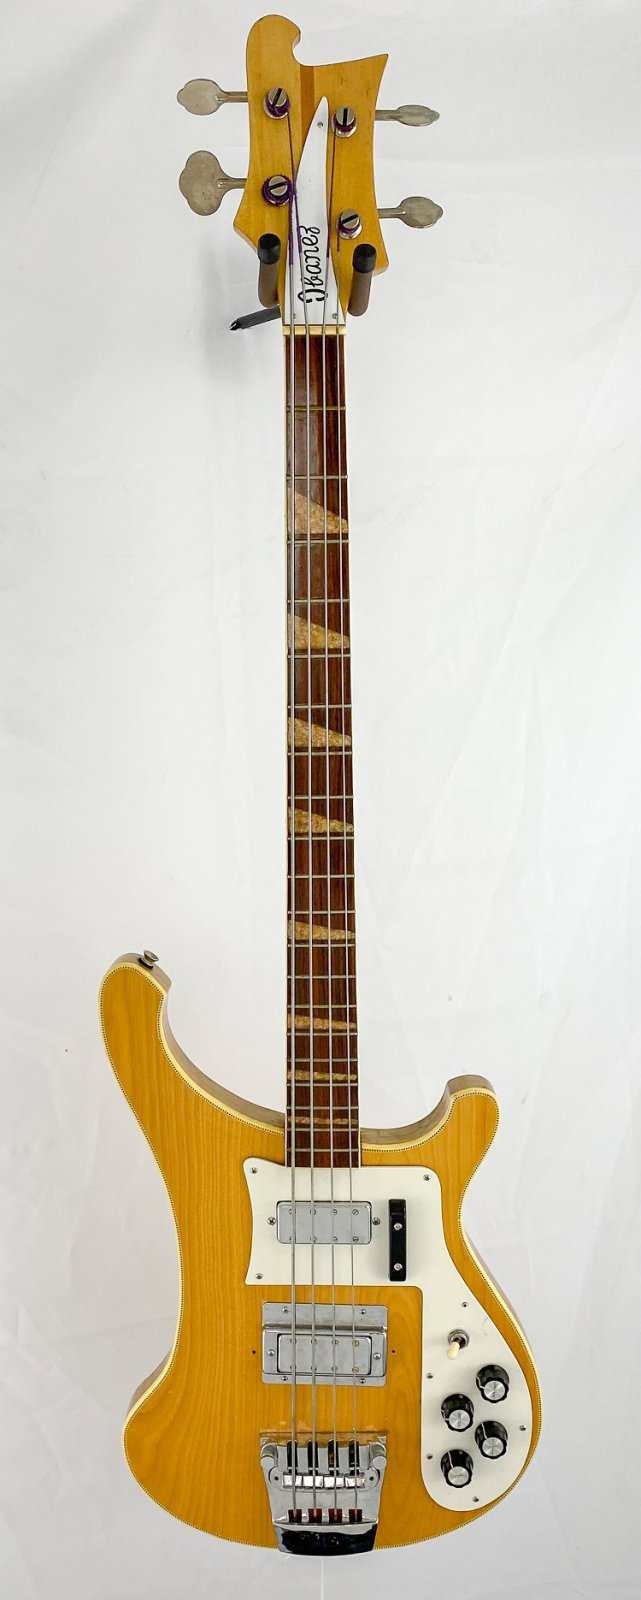 early 1970s Ibanez 2388B DX Ric copy